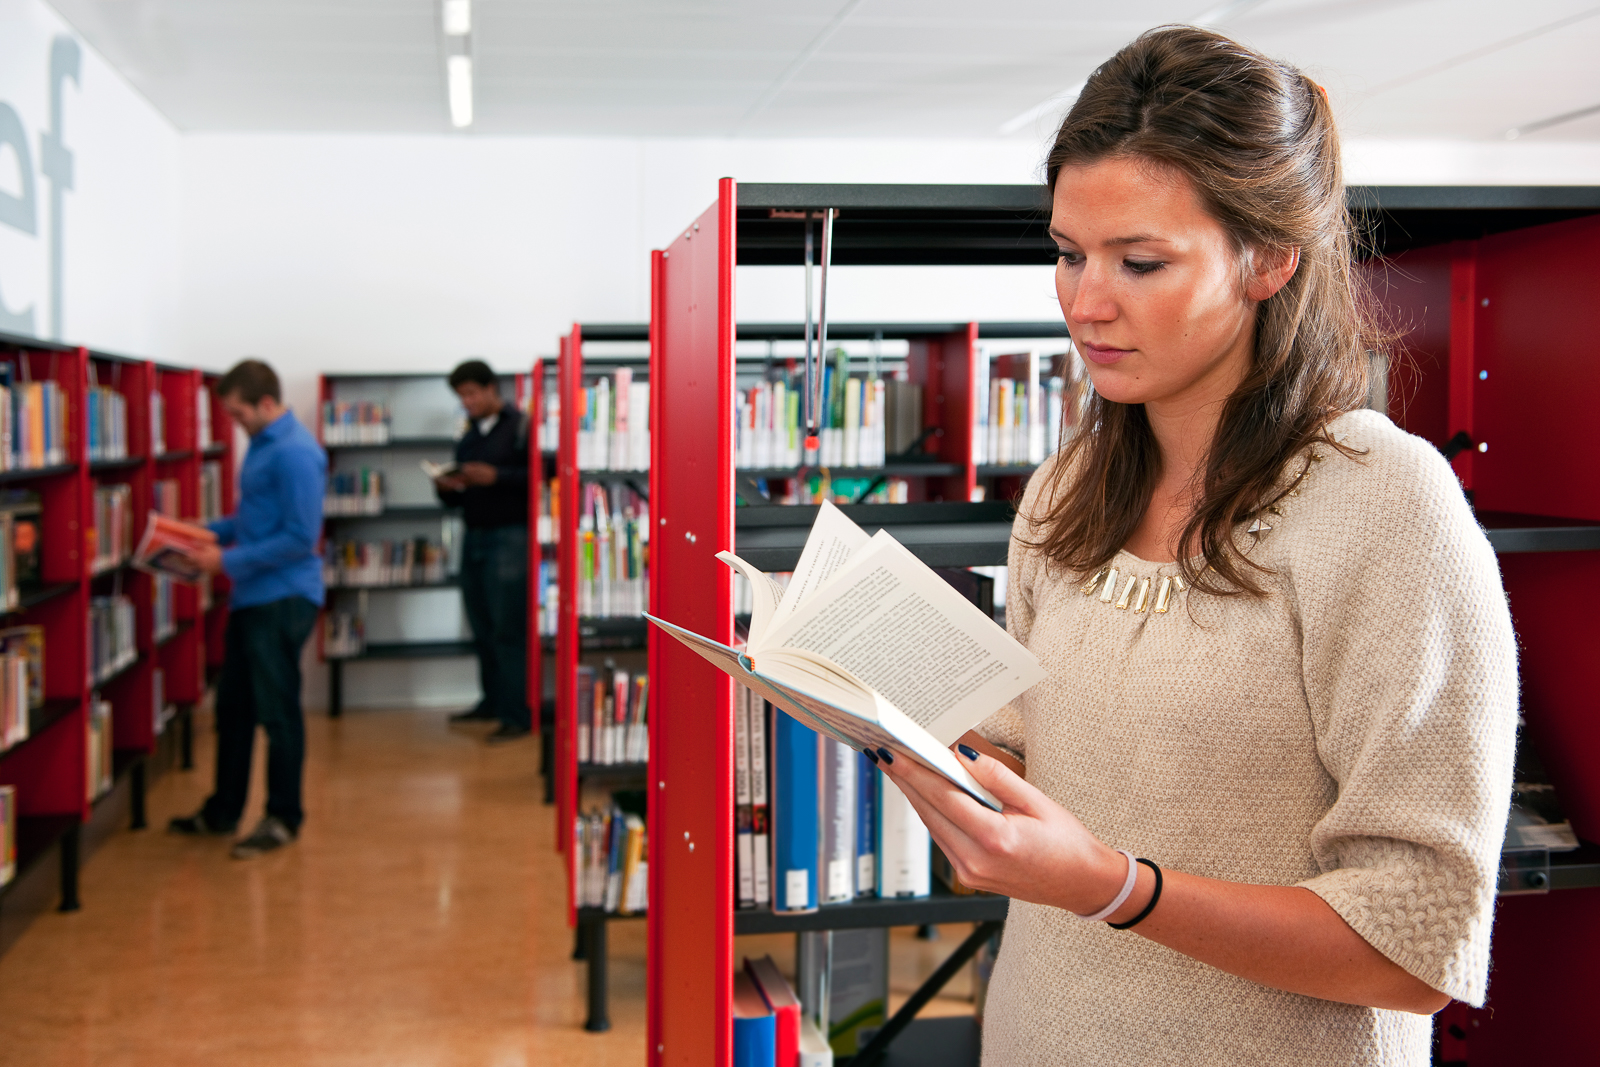 Young woman thumbing through a book in a library, with two other visitors in the background